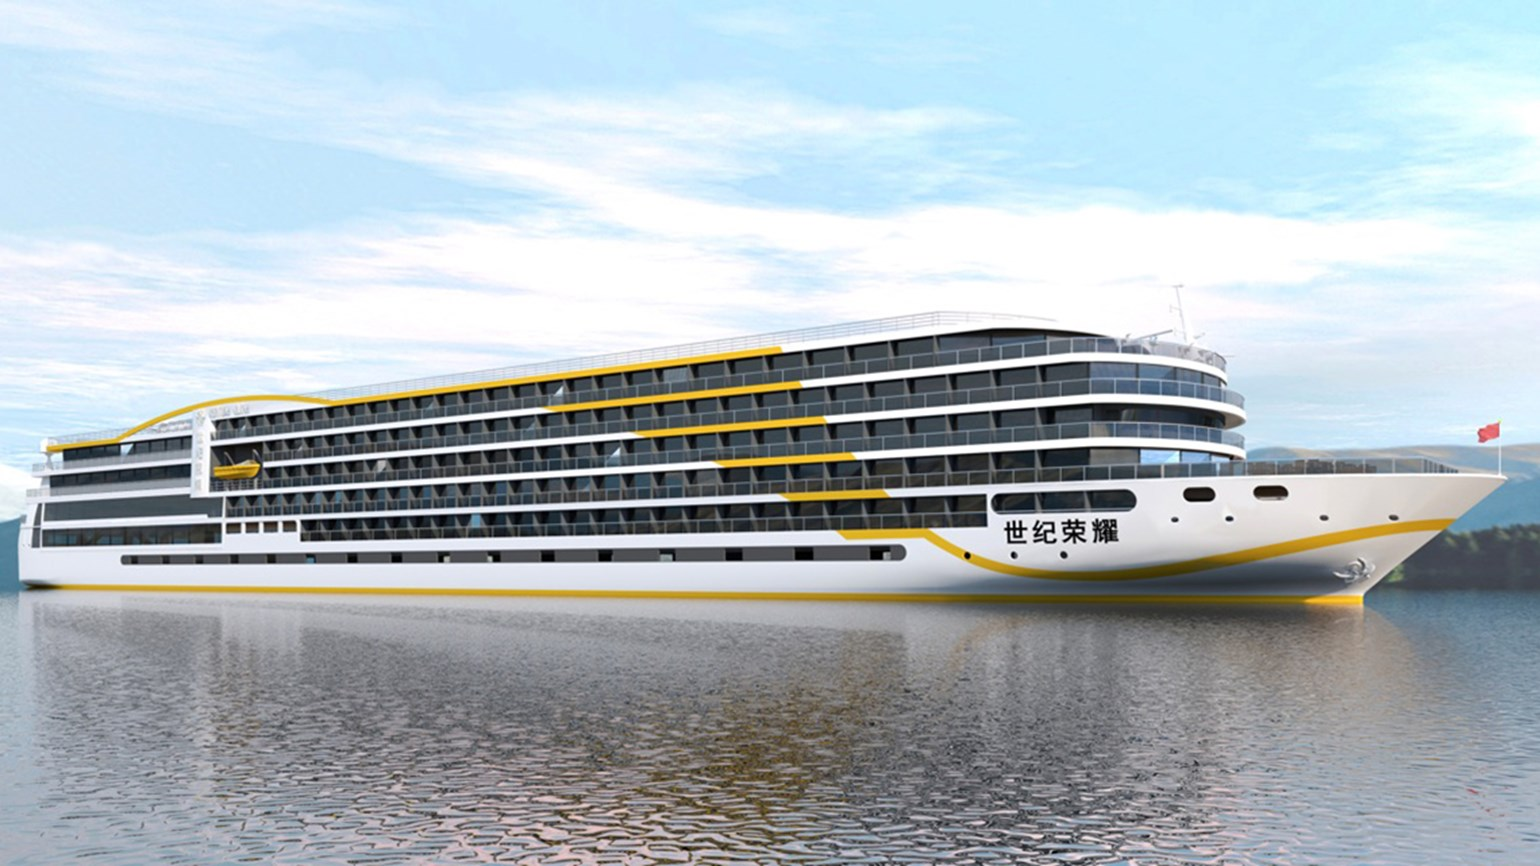 Century Cruises to launch newbuild Yangtze ship in 2019